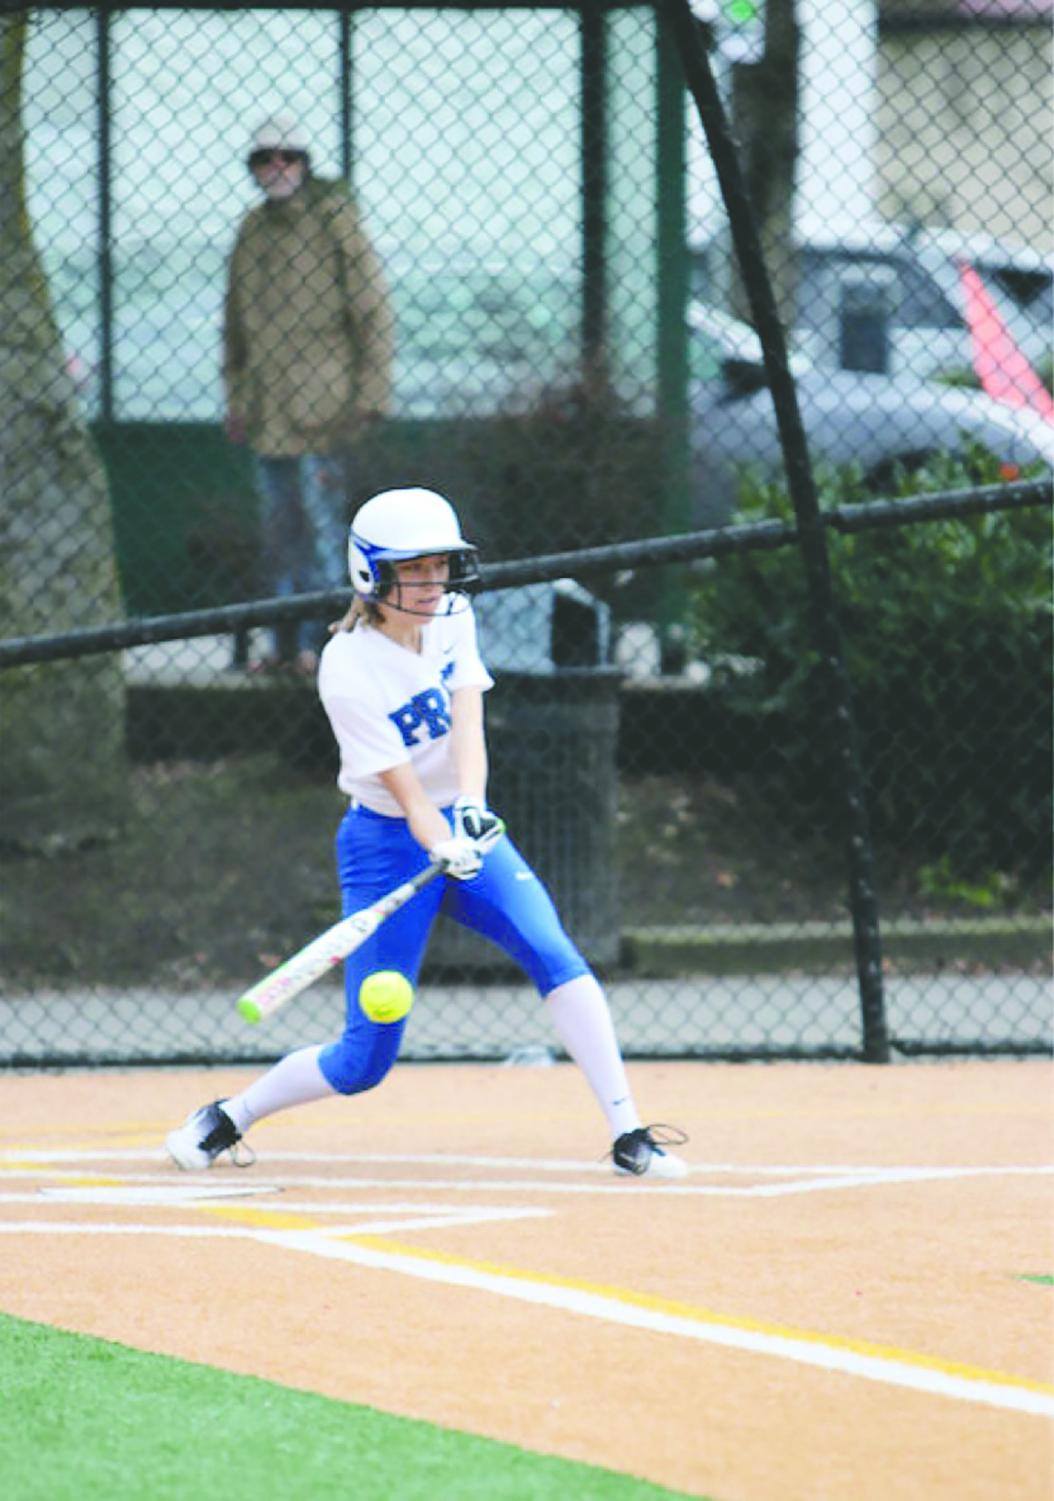 Alex Baker batting at a Seattle Prep Softball game. Baker is a two season athlete with a great batting average.